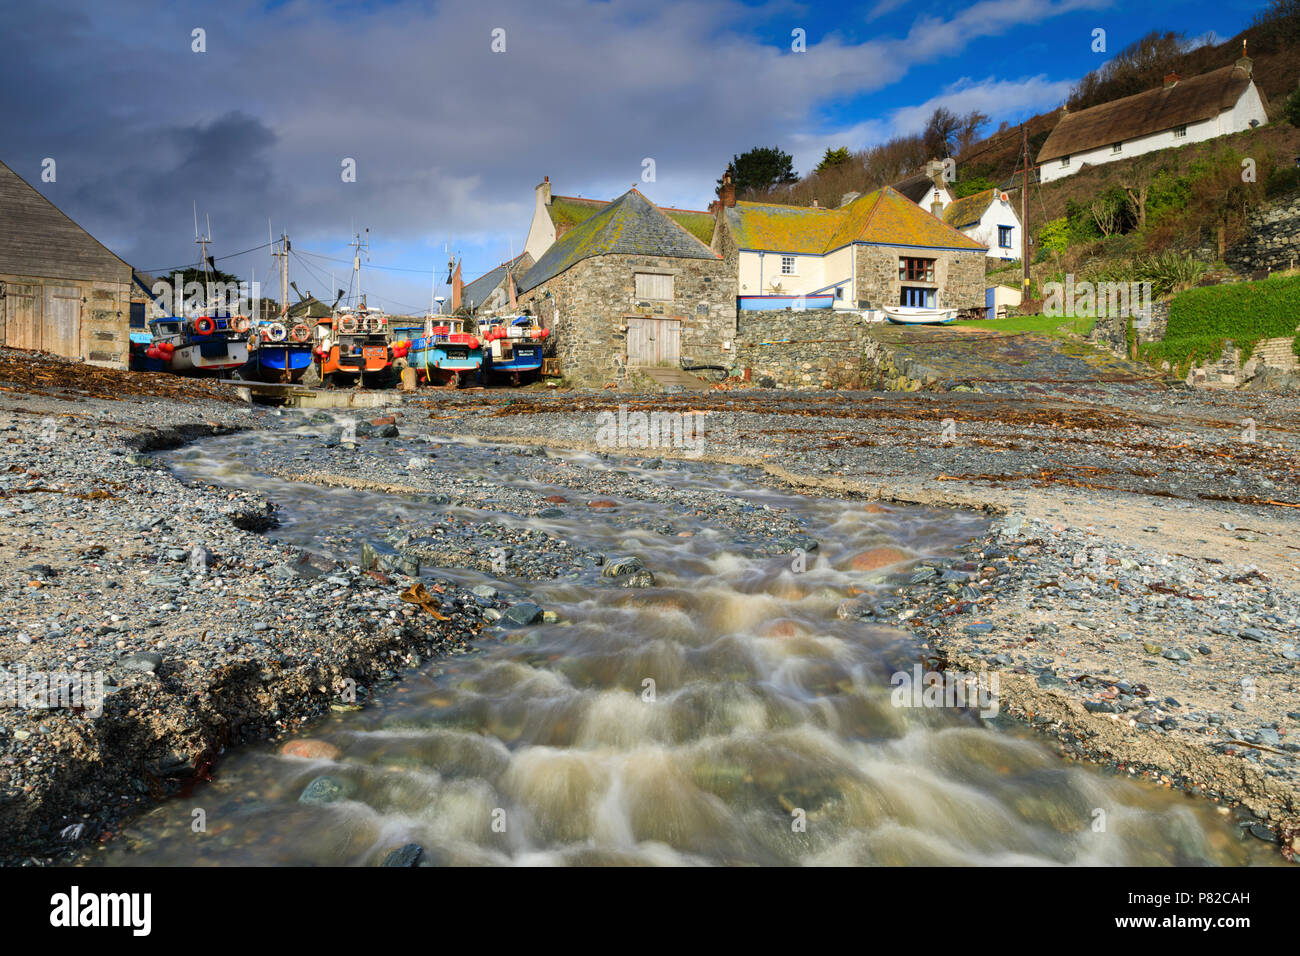 The stream on the shingle beach at Cadgwith Cove in Cornwall - Stock Image